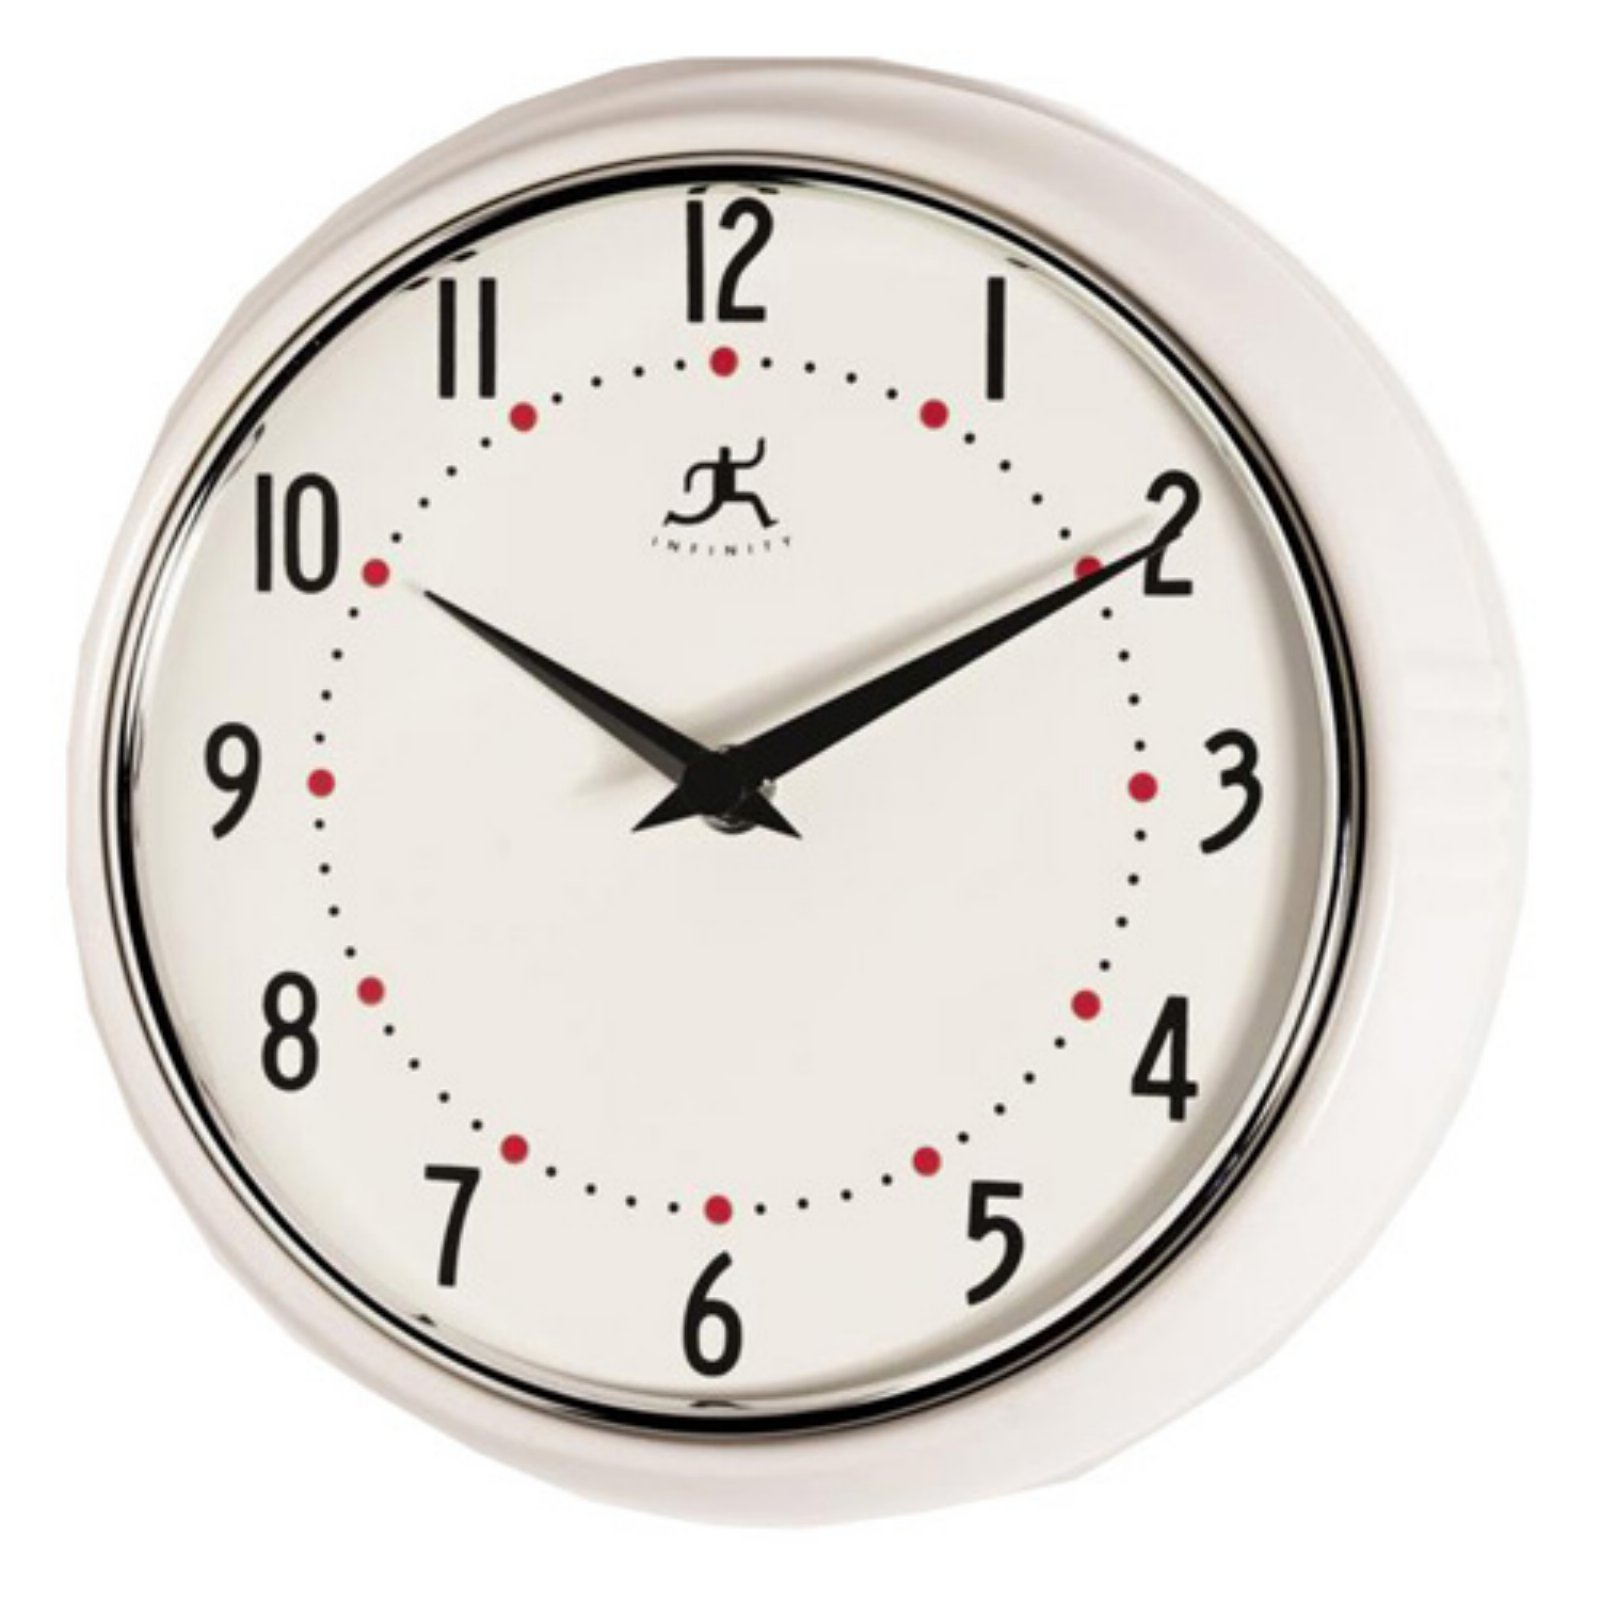 Infinity Instruments-White Retro Round Metal 9.5 in. Wall Clock